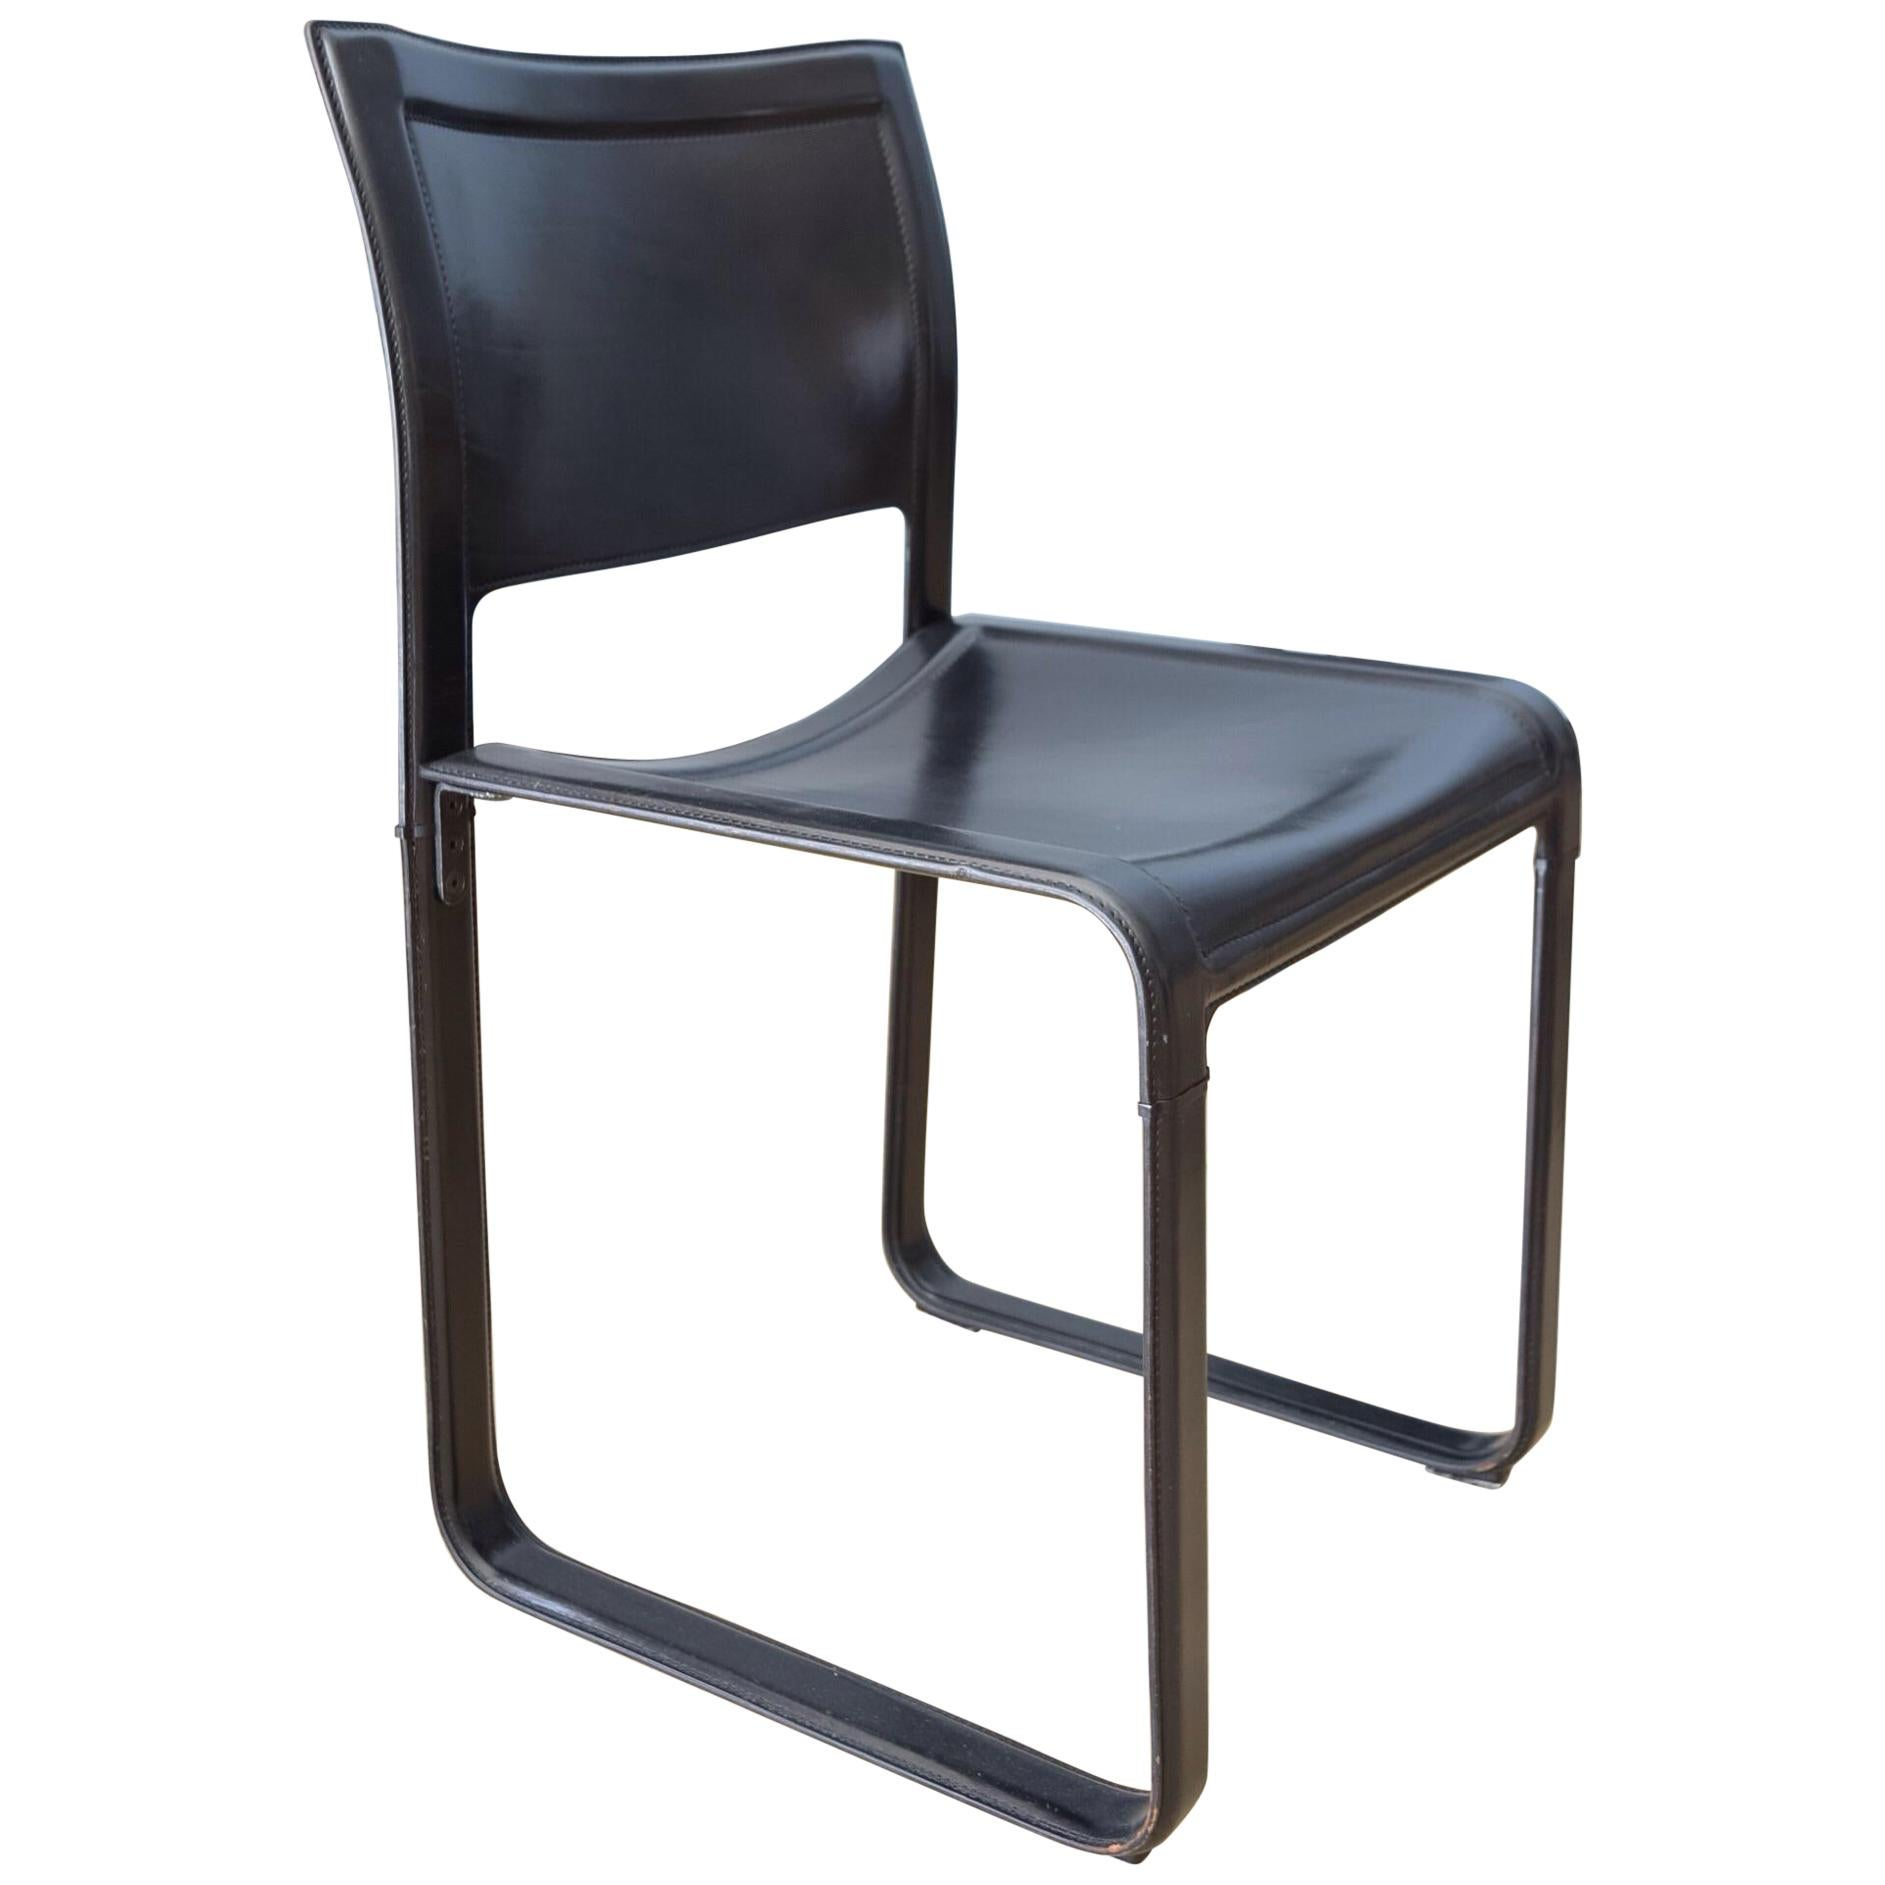 Delicieux Matteo Grassi Sistina Strap Black Leather Dining Chair, 3 Chairs Available